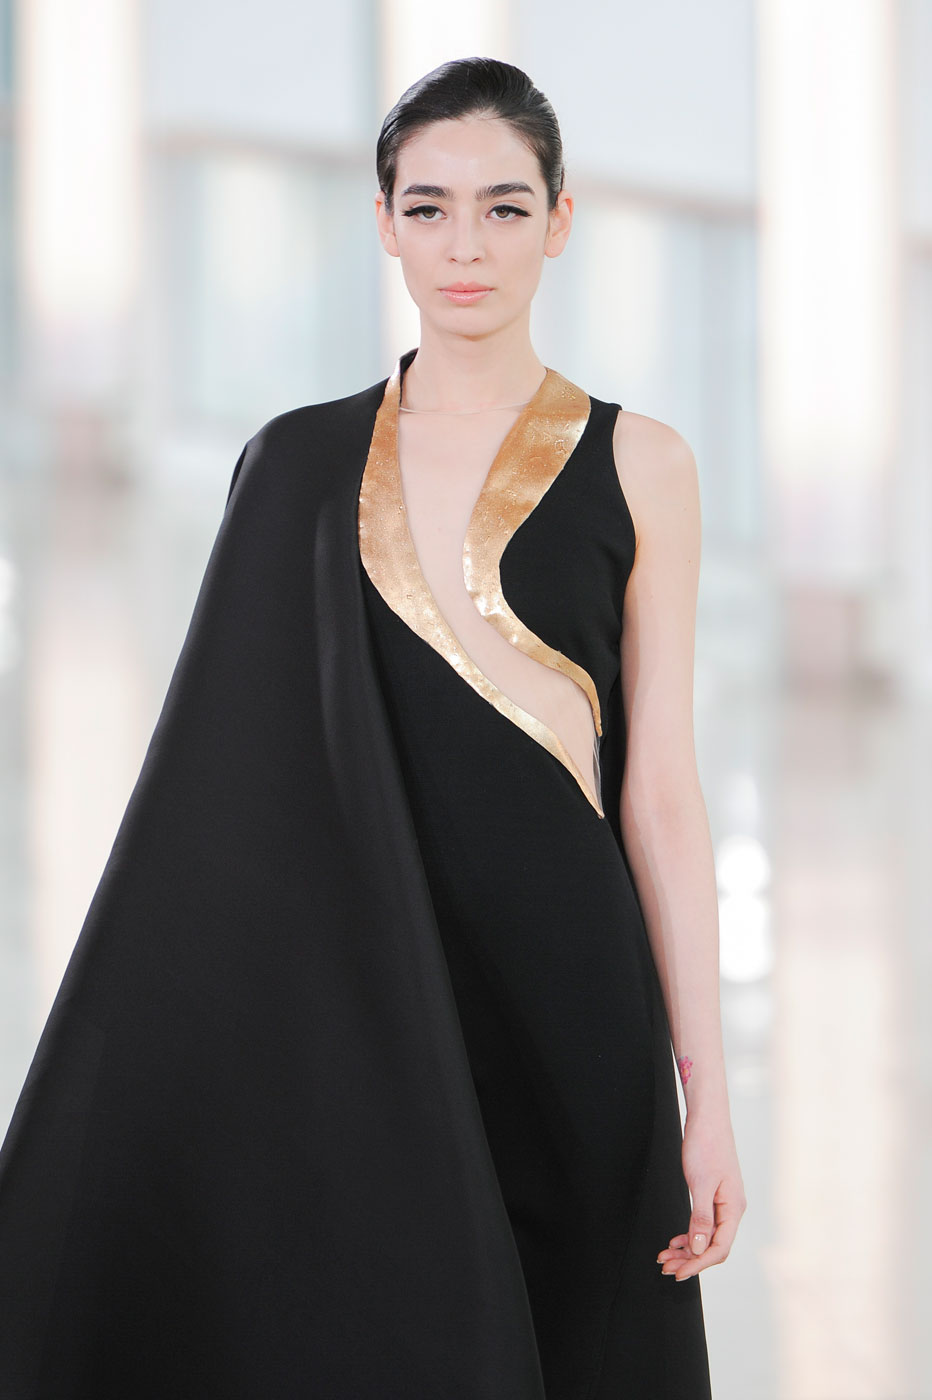 stephane-rolland-fashion-runway-show-haute-couture-paris-spring-2015-the-impression-43